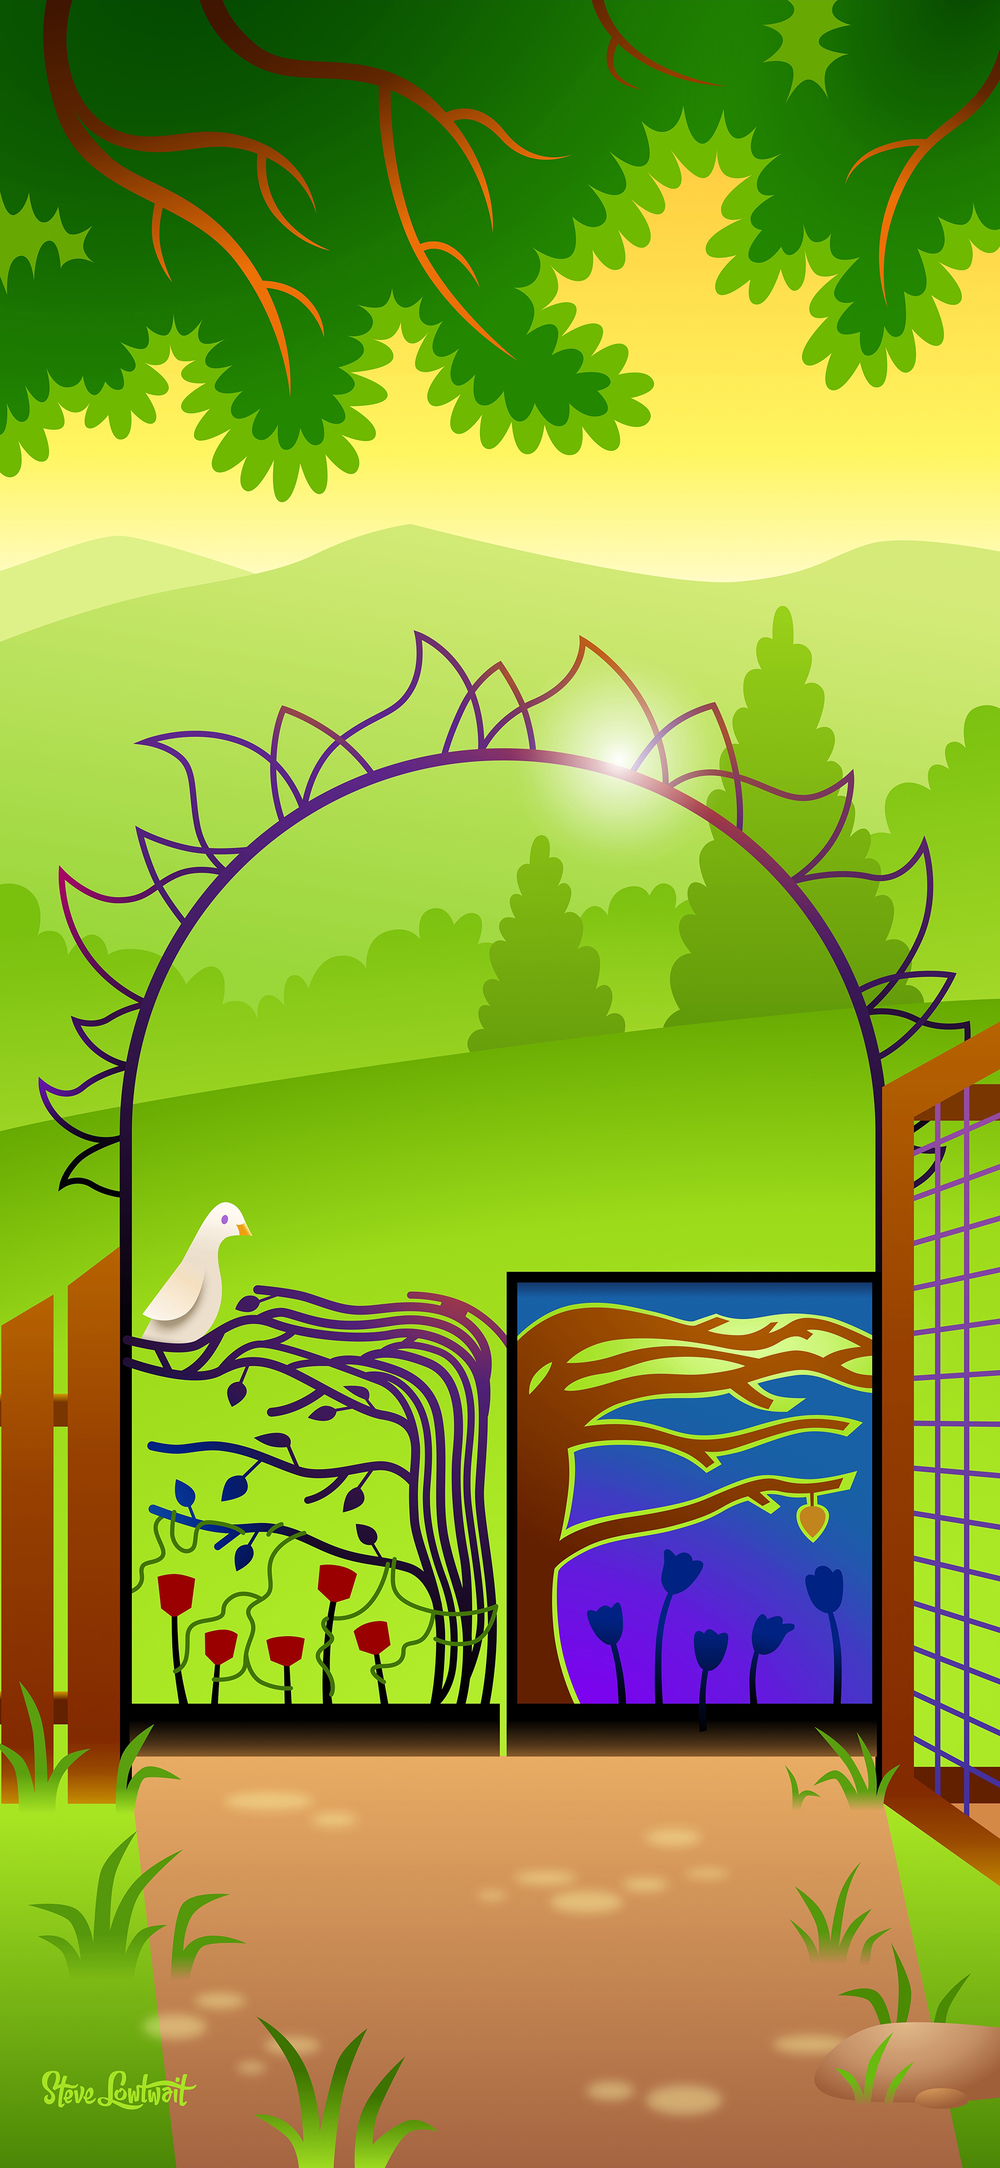 Nature clipart school ground Artwork purchased School support Banners